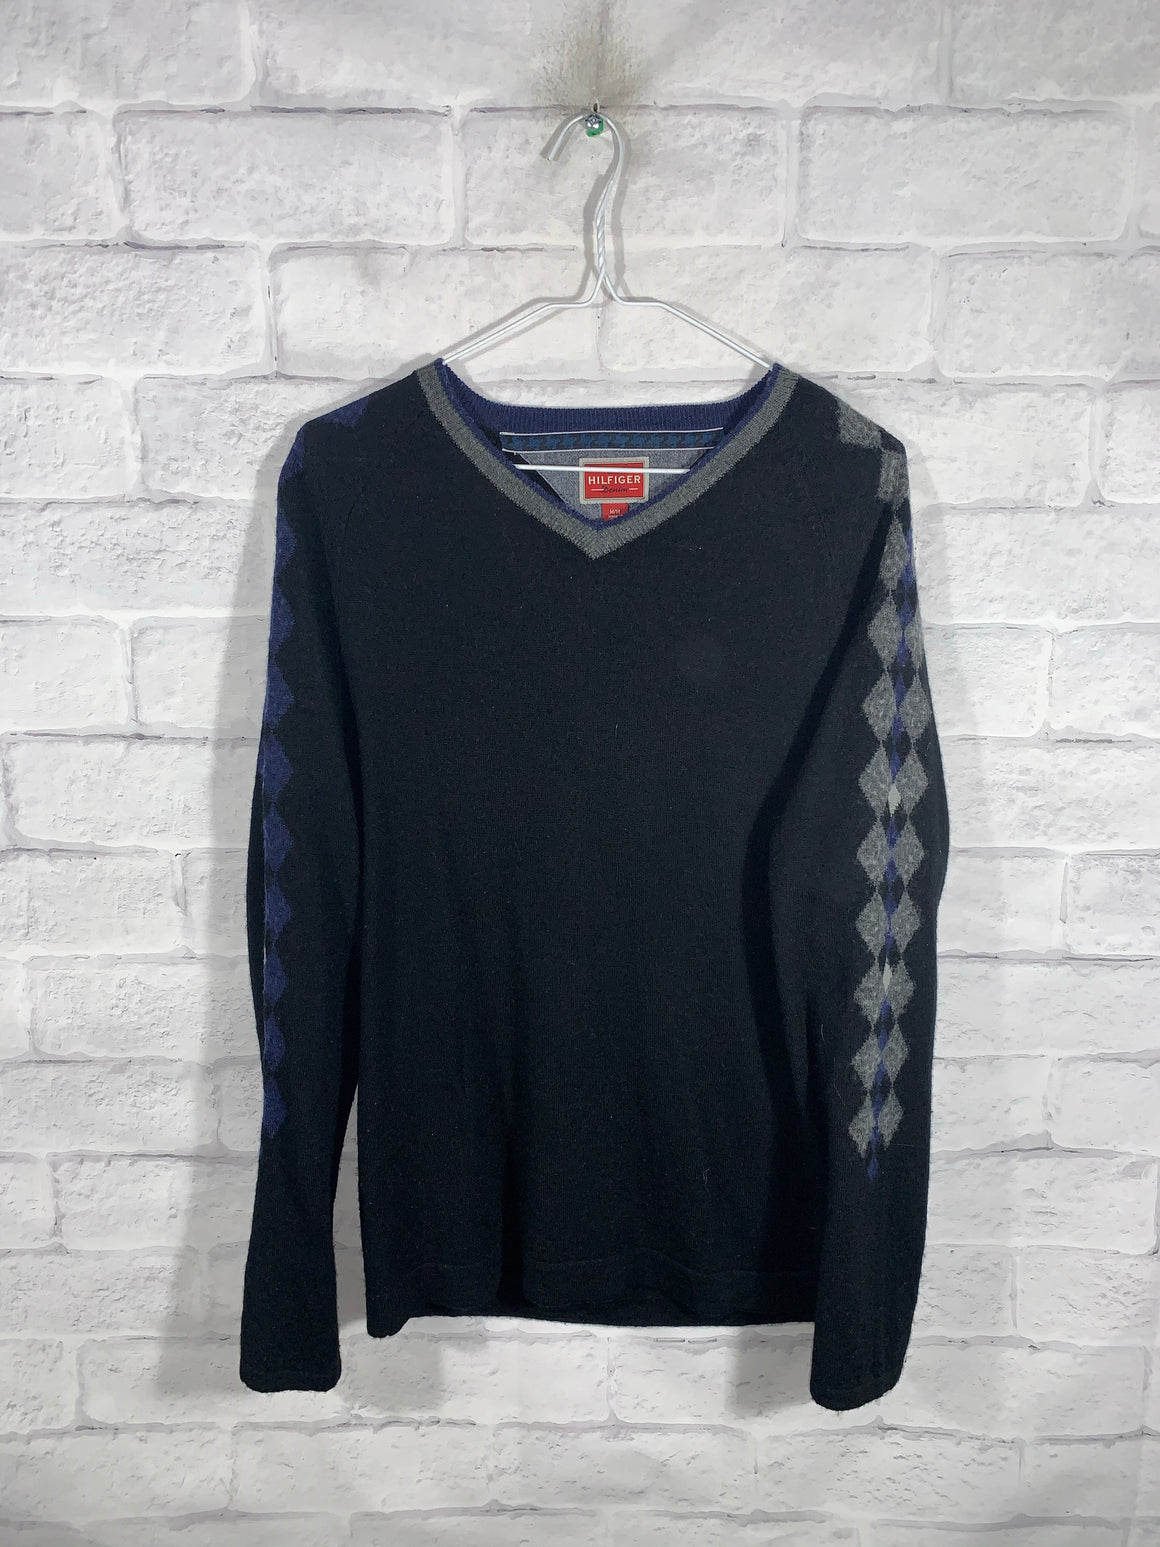 Grey/Blue Tommy Hilfiger Pullover Sweater